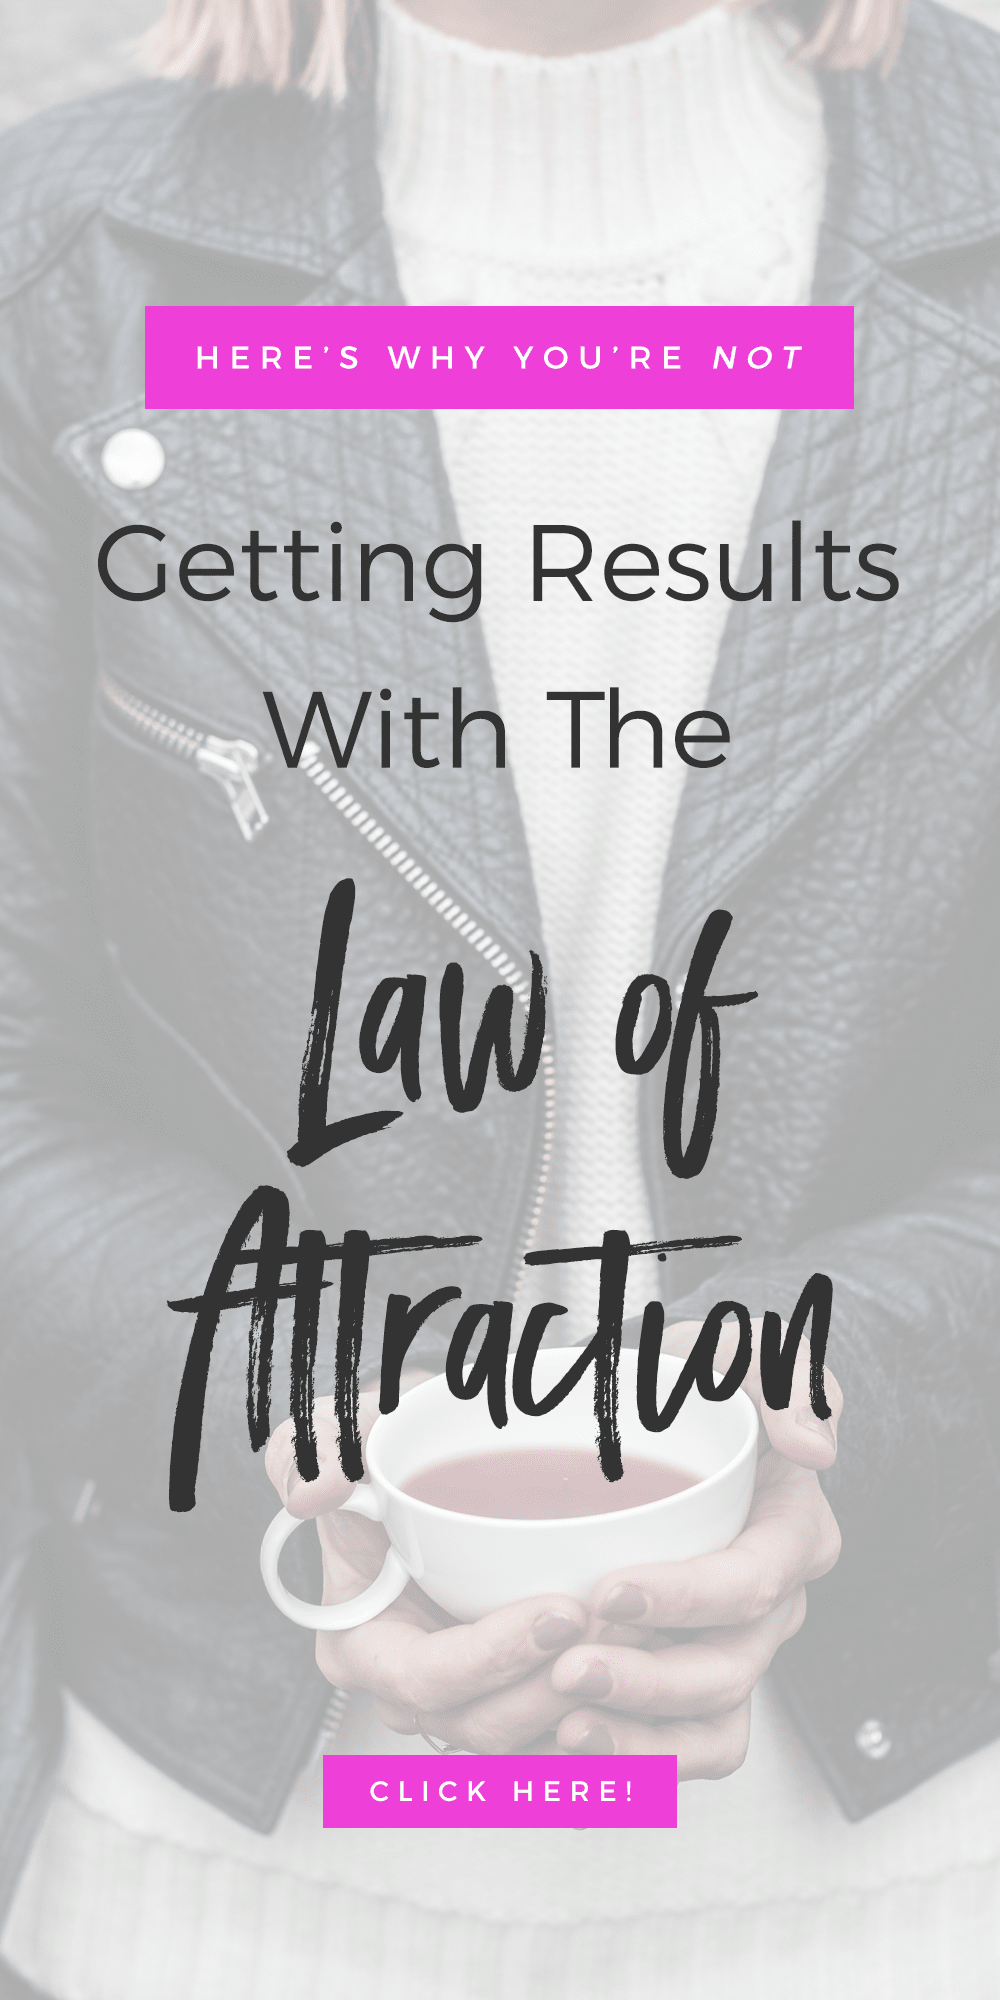 Here's Why You're Not Getting Results With The Law of Attraction